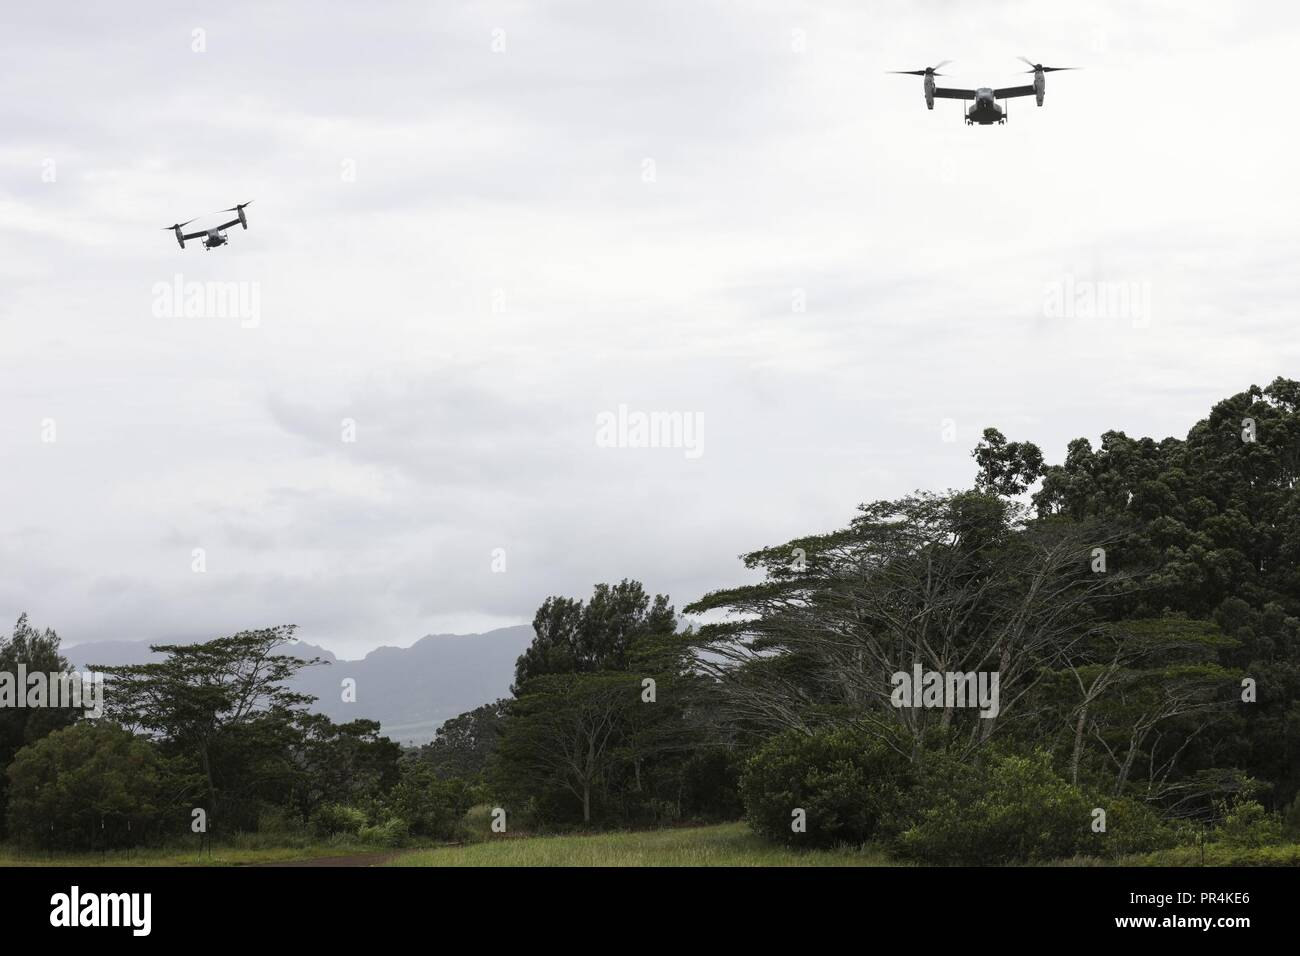 MV-22 Osprey aircraft assigned to Marine Medium Tiltrotor Squadron 363 (VMM-363), fly over jungle terrain during a confined area landing exercise near the Kahuku Training Area, Sept. 13, 2018. The training provided an opportunity for pilots and crew chiefs to improve their proficiency and experience in flying around a tropical environment. Stock Photo